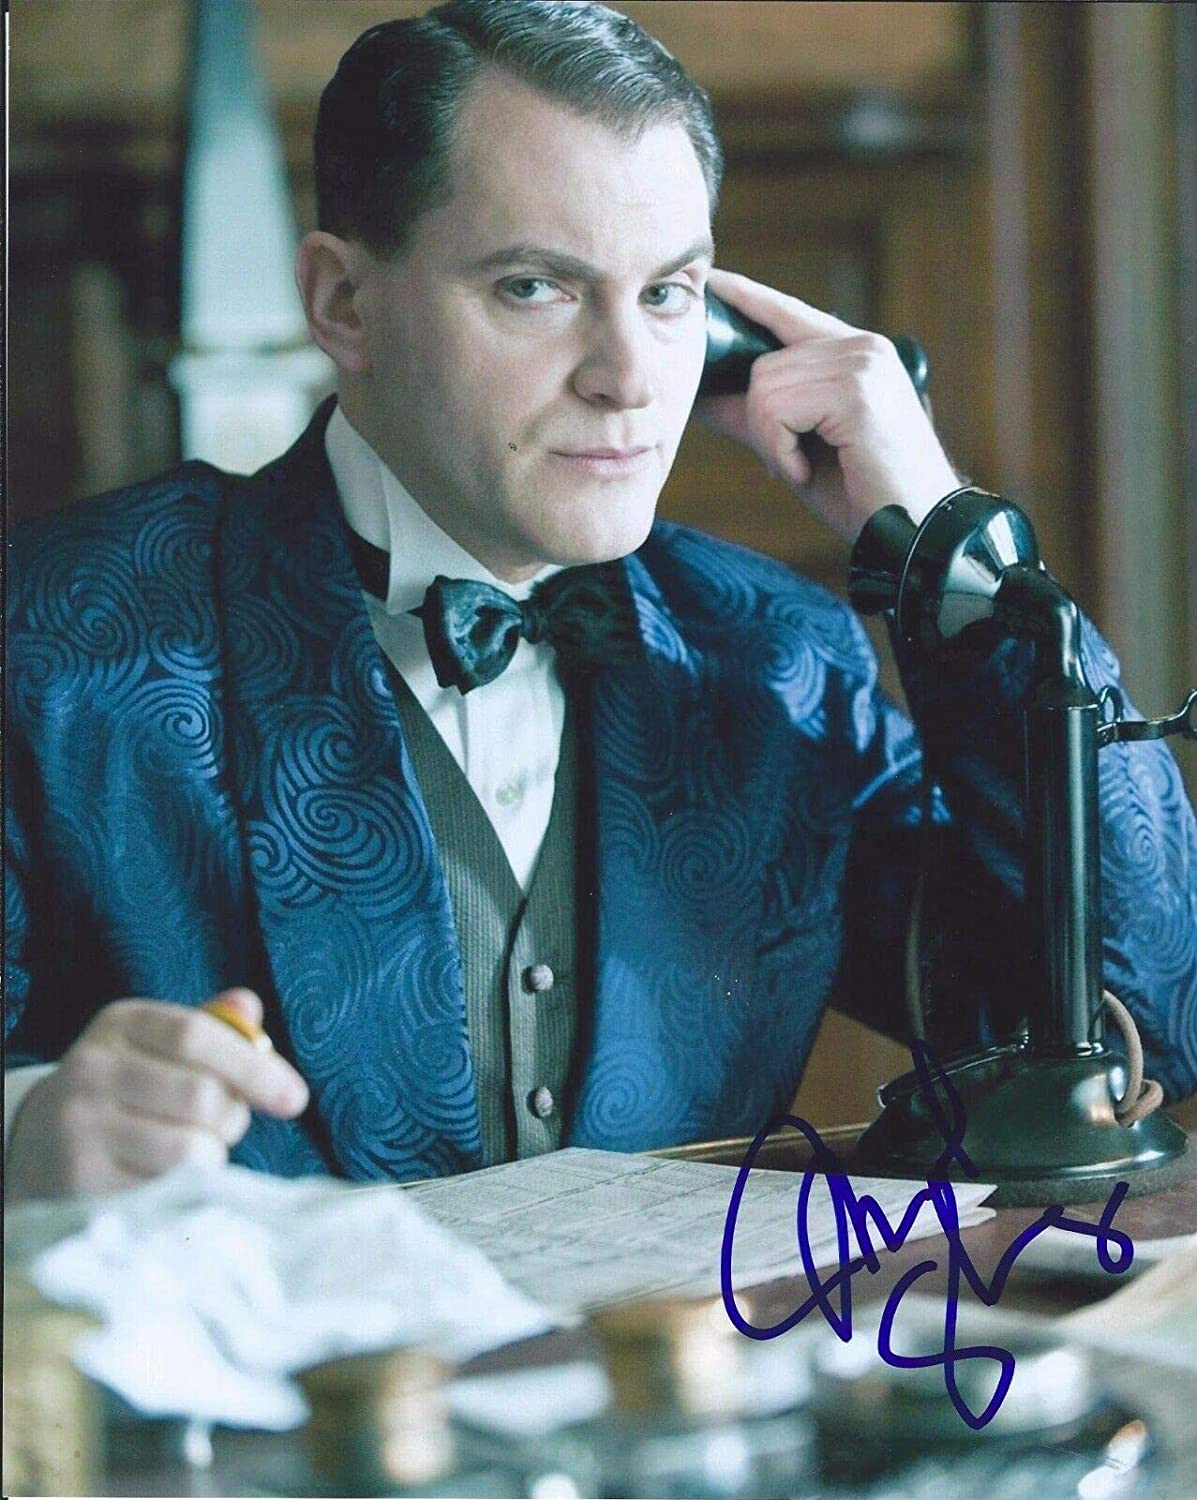 Michael Stuhlbarg Now free shipping Signed Autographed Popularity Empire 8x10 Boardwalk Photo